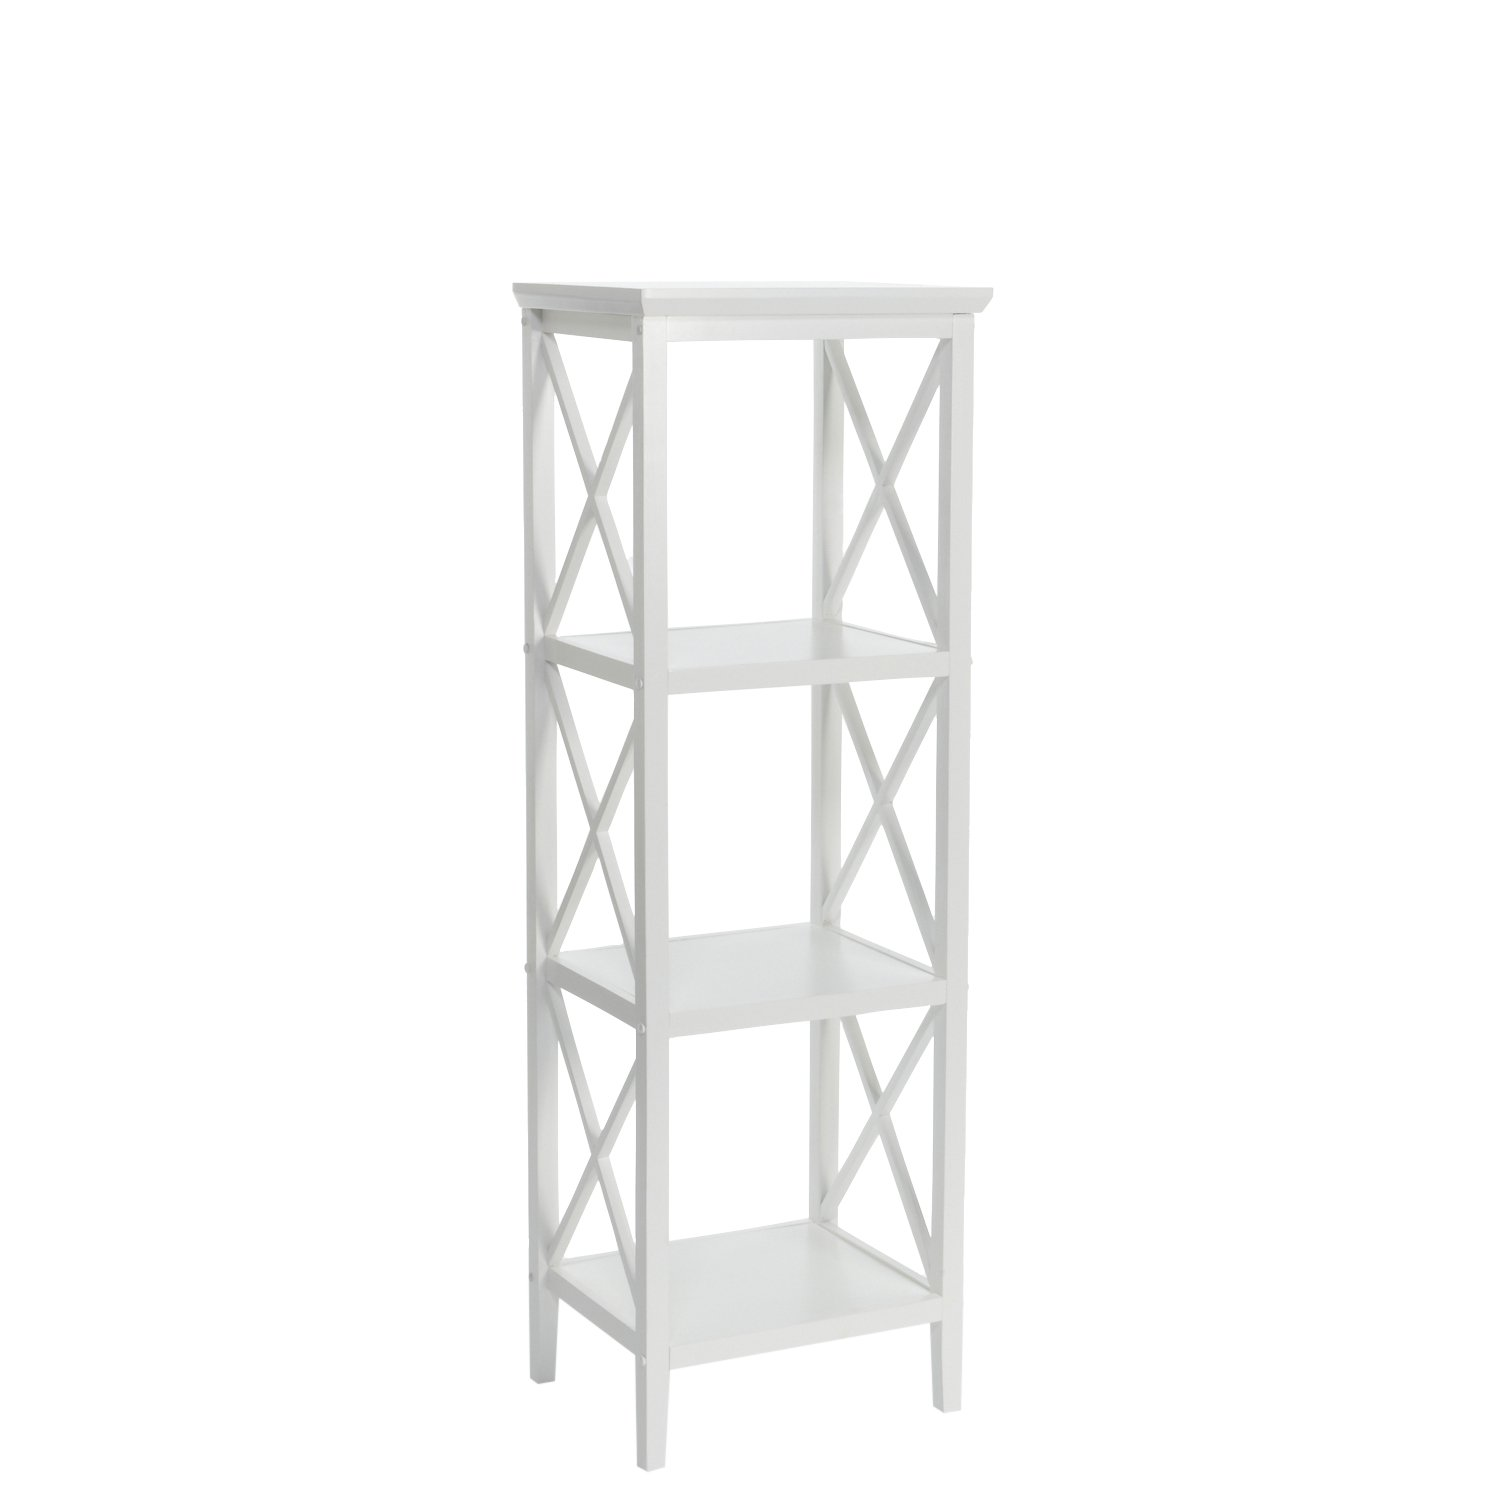 RiverRidge X- Frame Collection 4-Shelf Storage Tower, White by RiverRidge Home (Image #1)